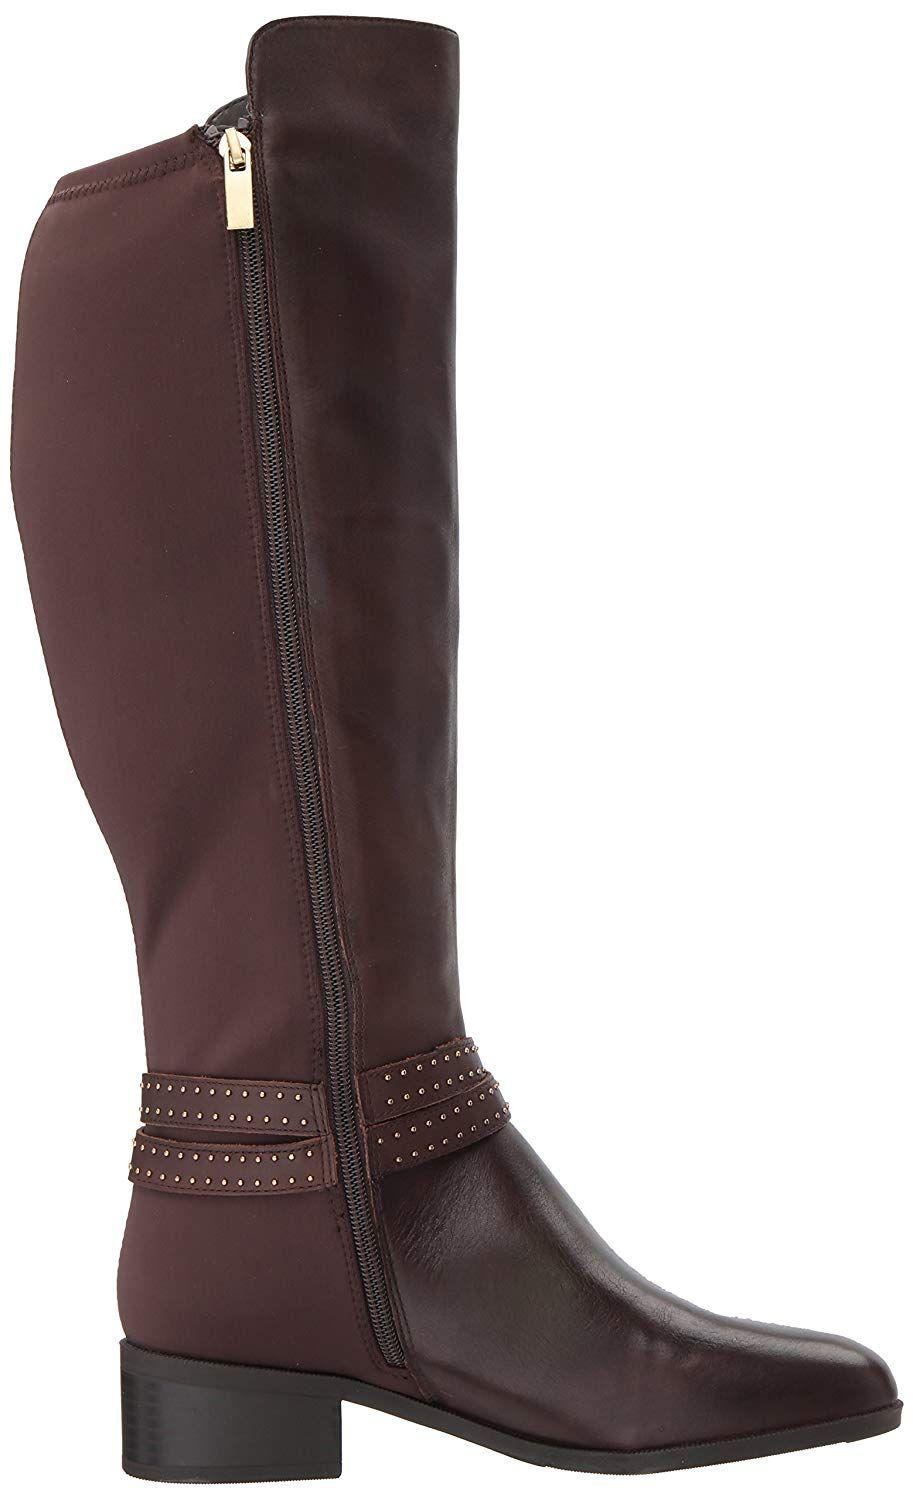 386580f4822 Bandolino - Brown Womens Bryices Wide Calf Leather Almond Toe Knee High  Fashion Boots - Lyst. View fullscreen